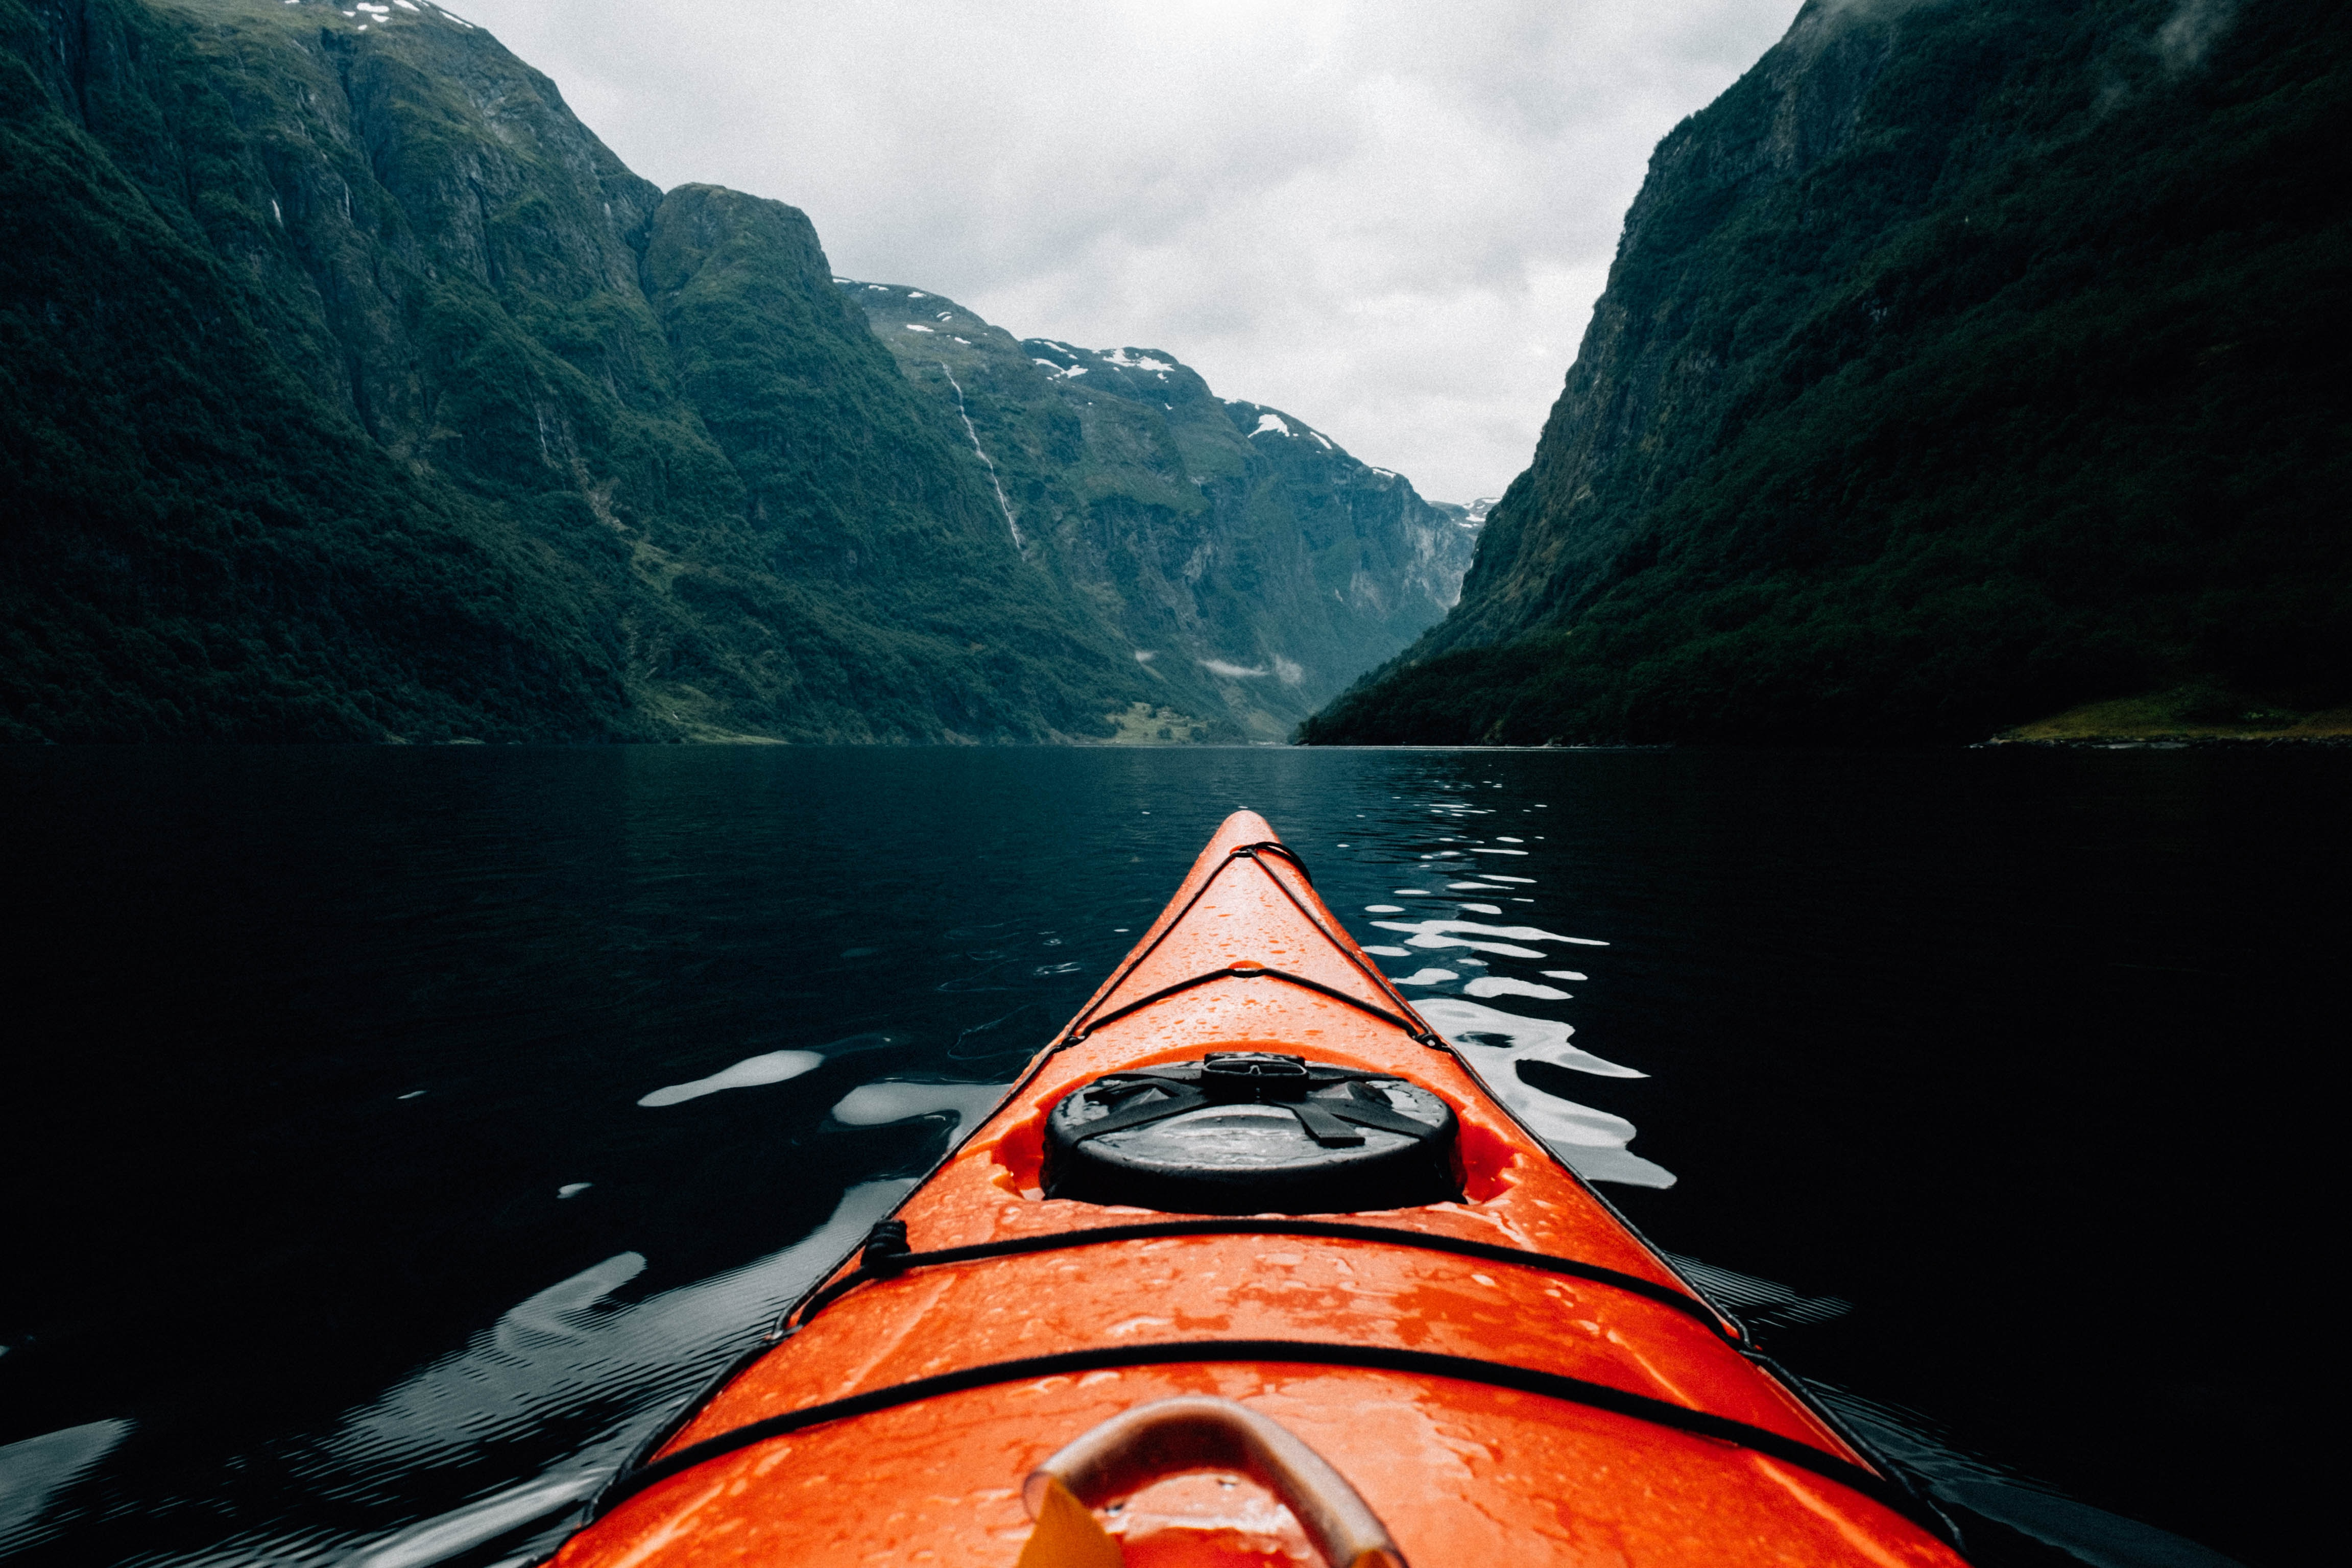 Gear for your picturesque paddle image